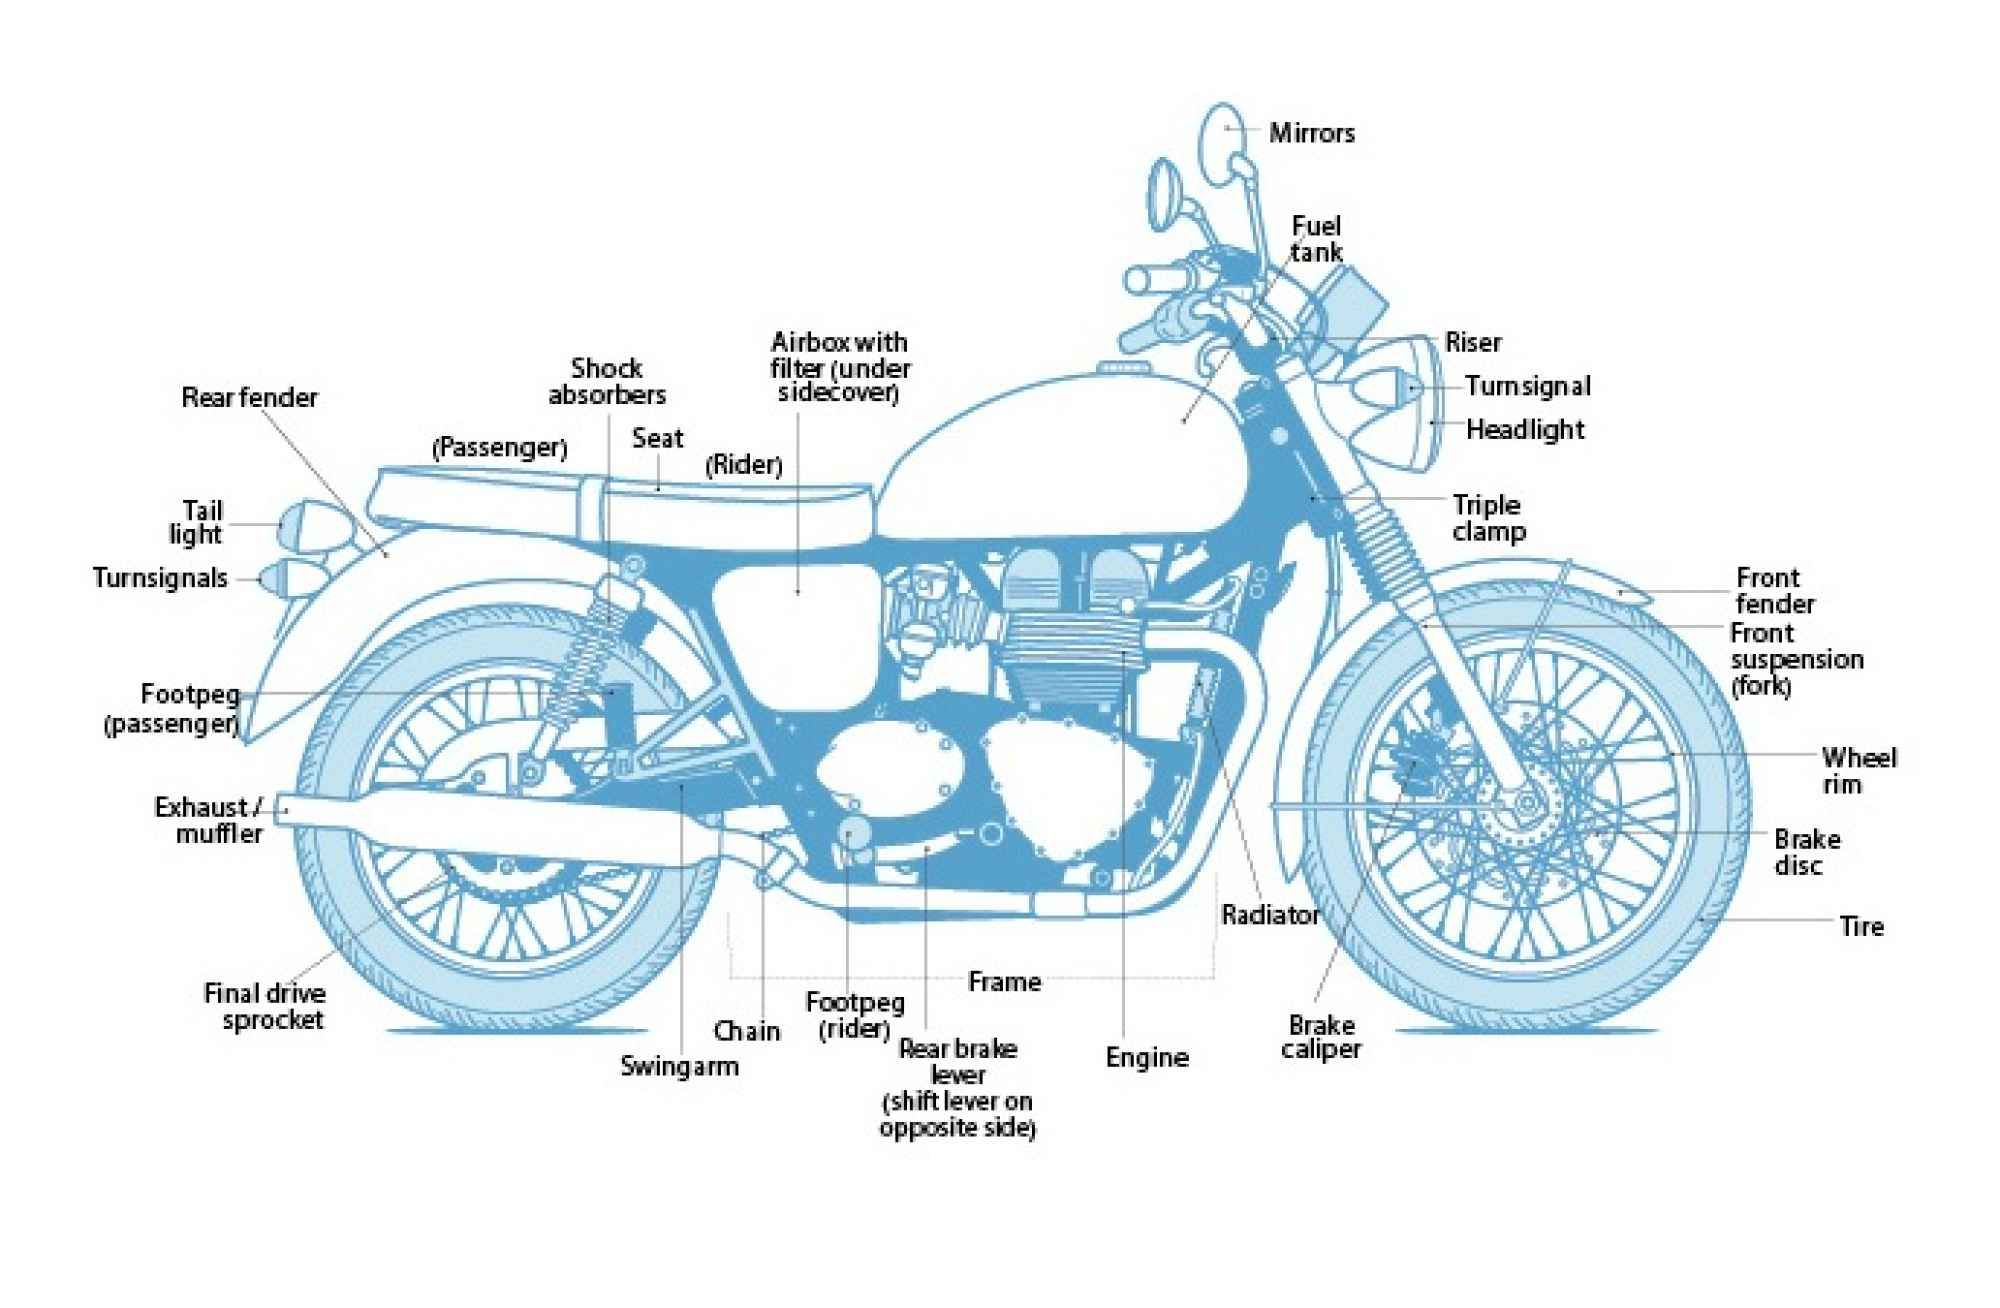 hight resolution of motorcycle diagram motorcycles motorcycle motorcycle parts harley davidson motorcycle microfiche harley davidson motorcycle diagrams